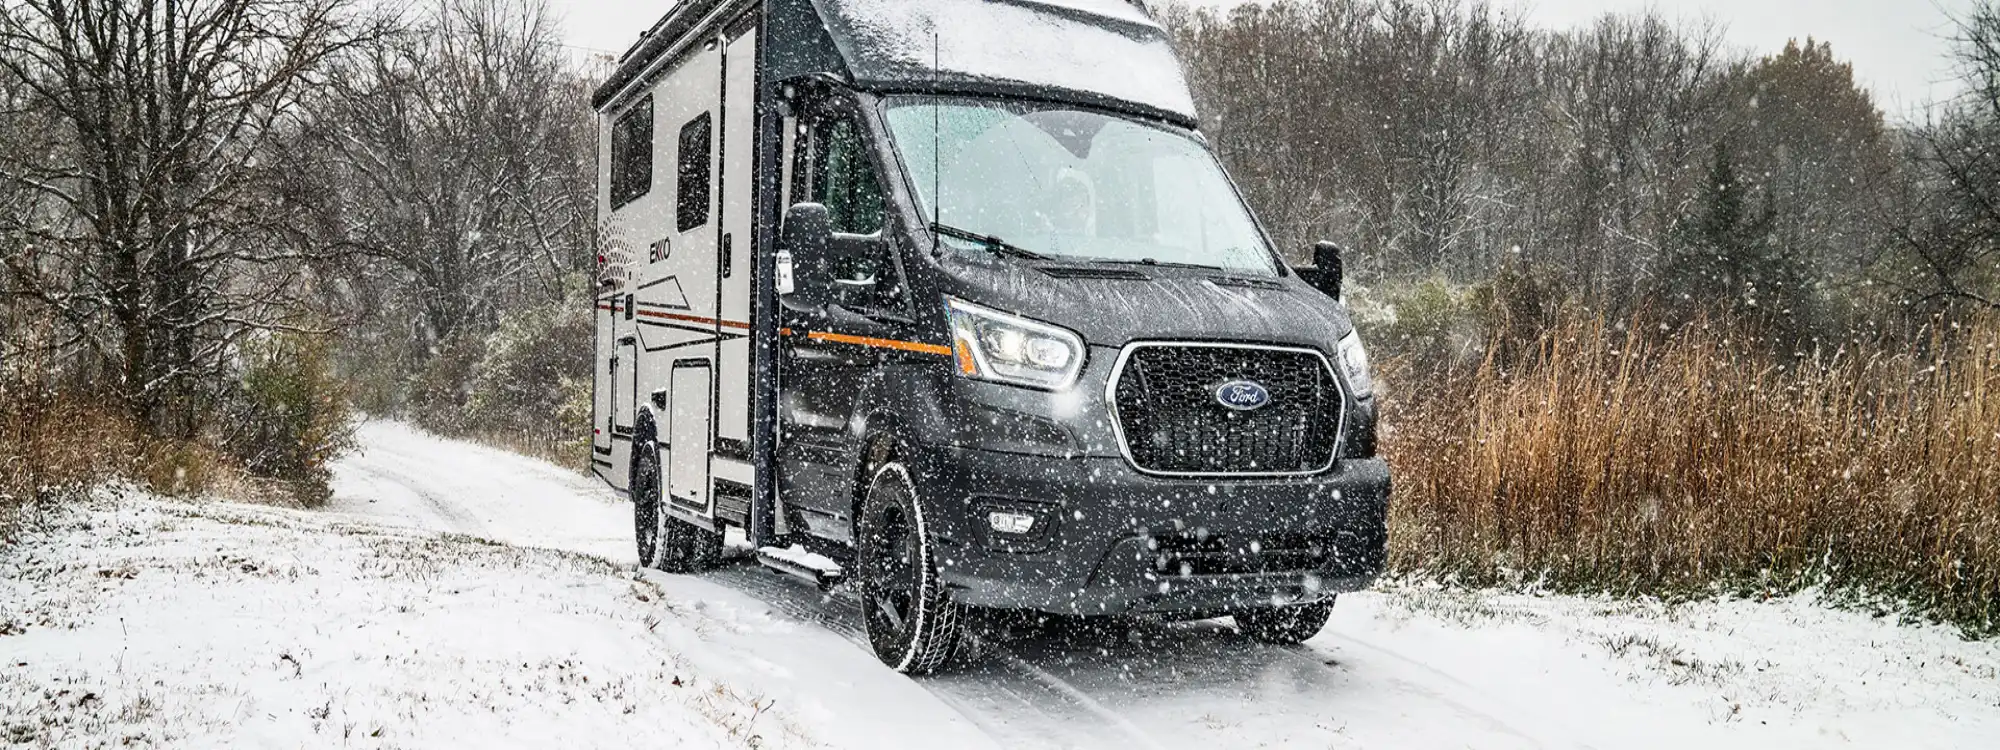 best winnebago campers ekko driving thorough snow